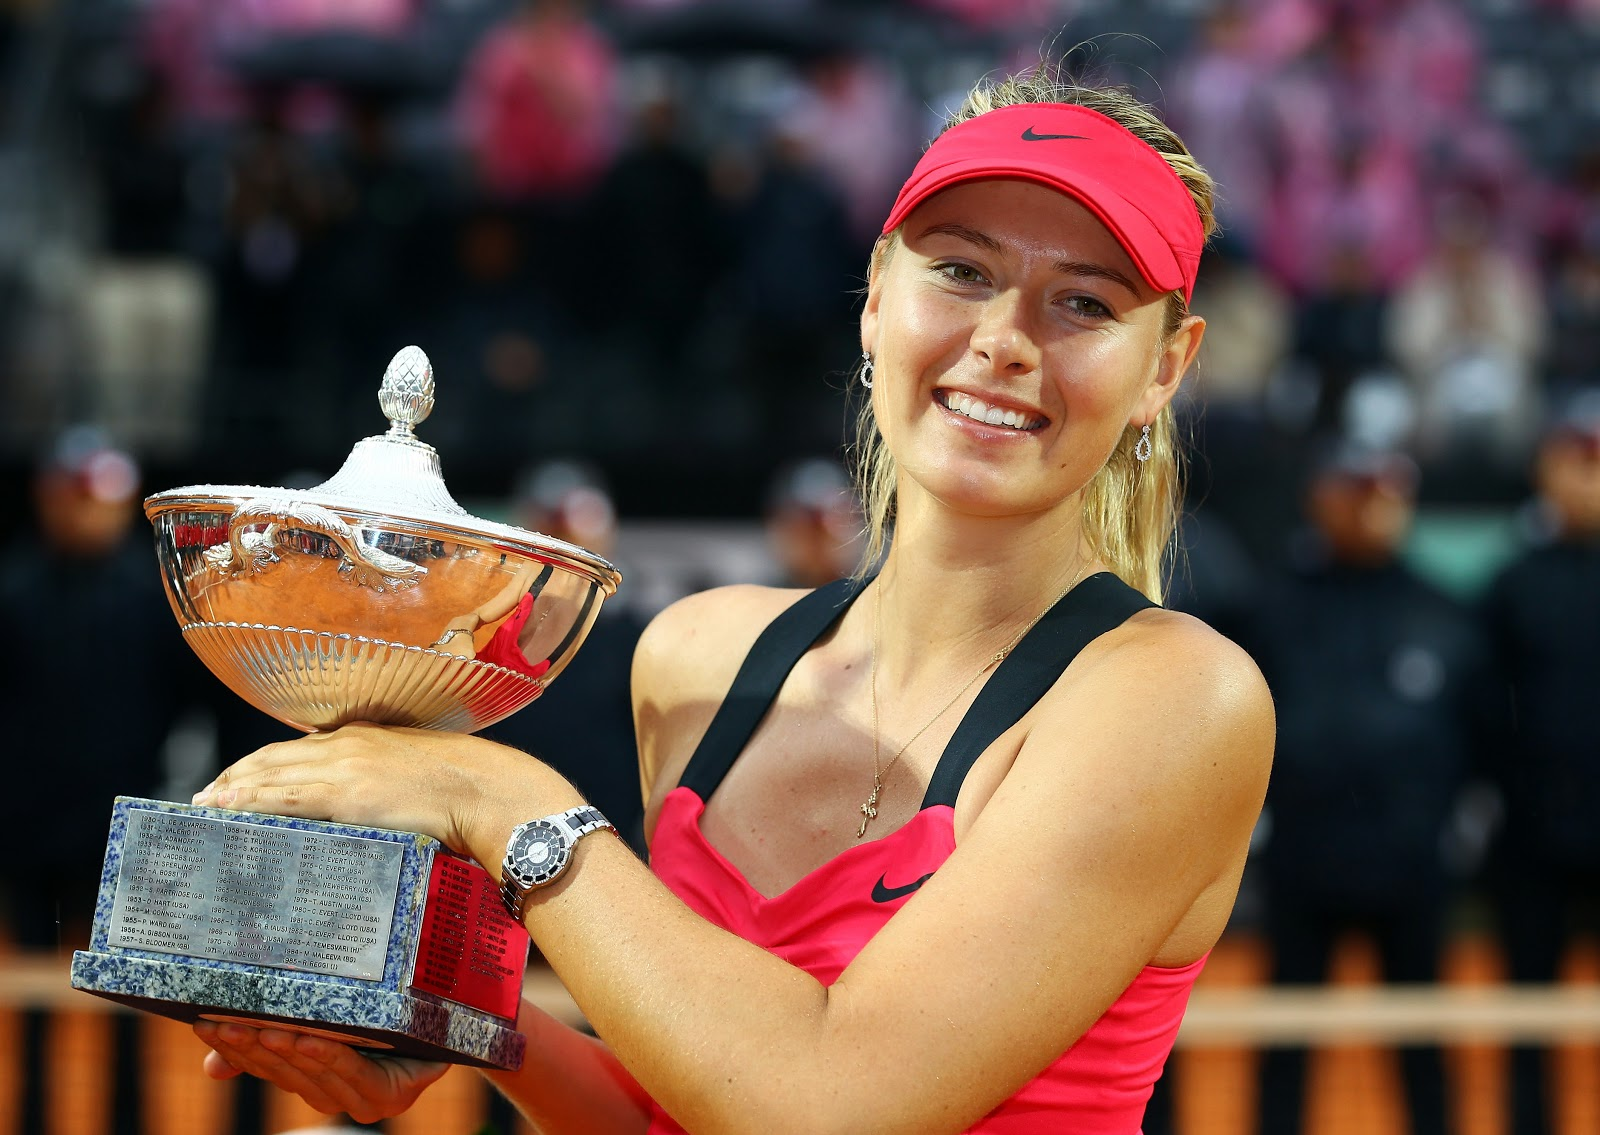 fantastic maria sharapova shield hd mobile desktop free background images